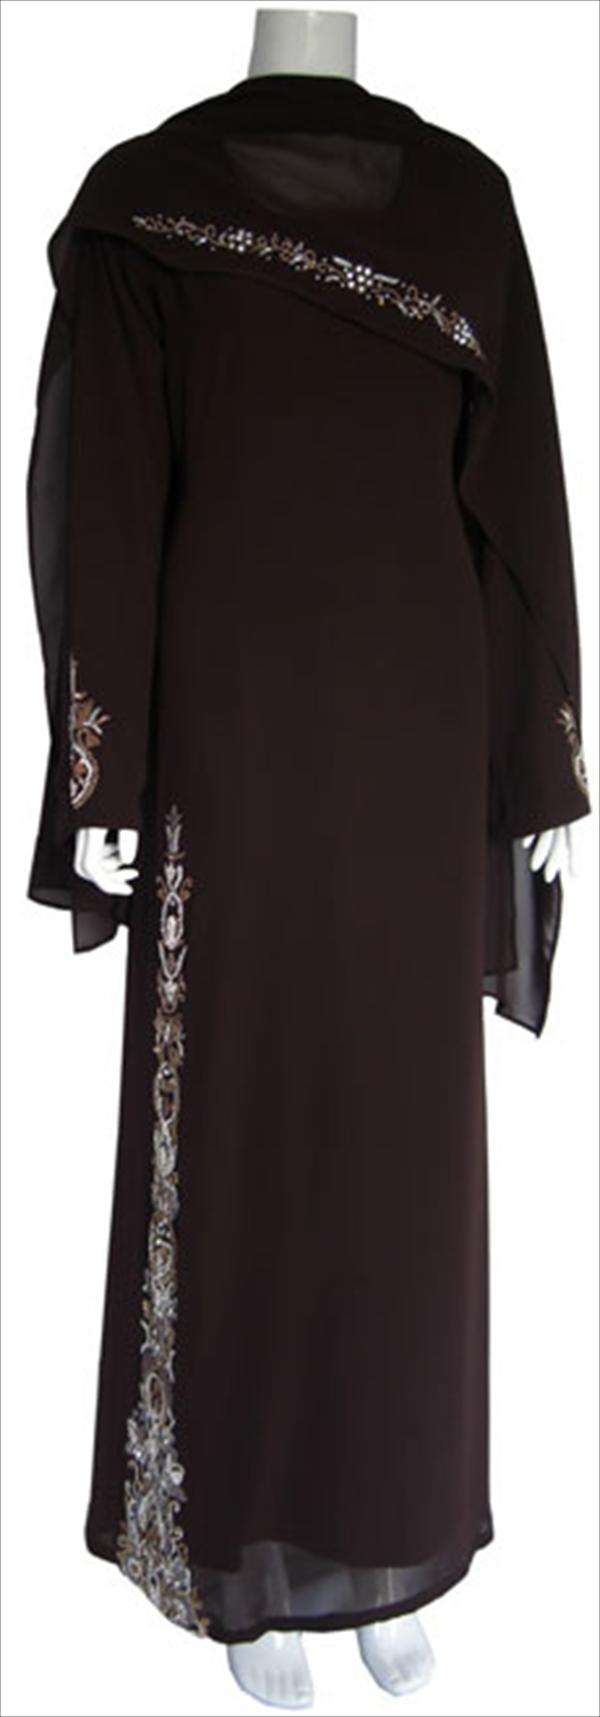 jilbaab dress